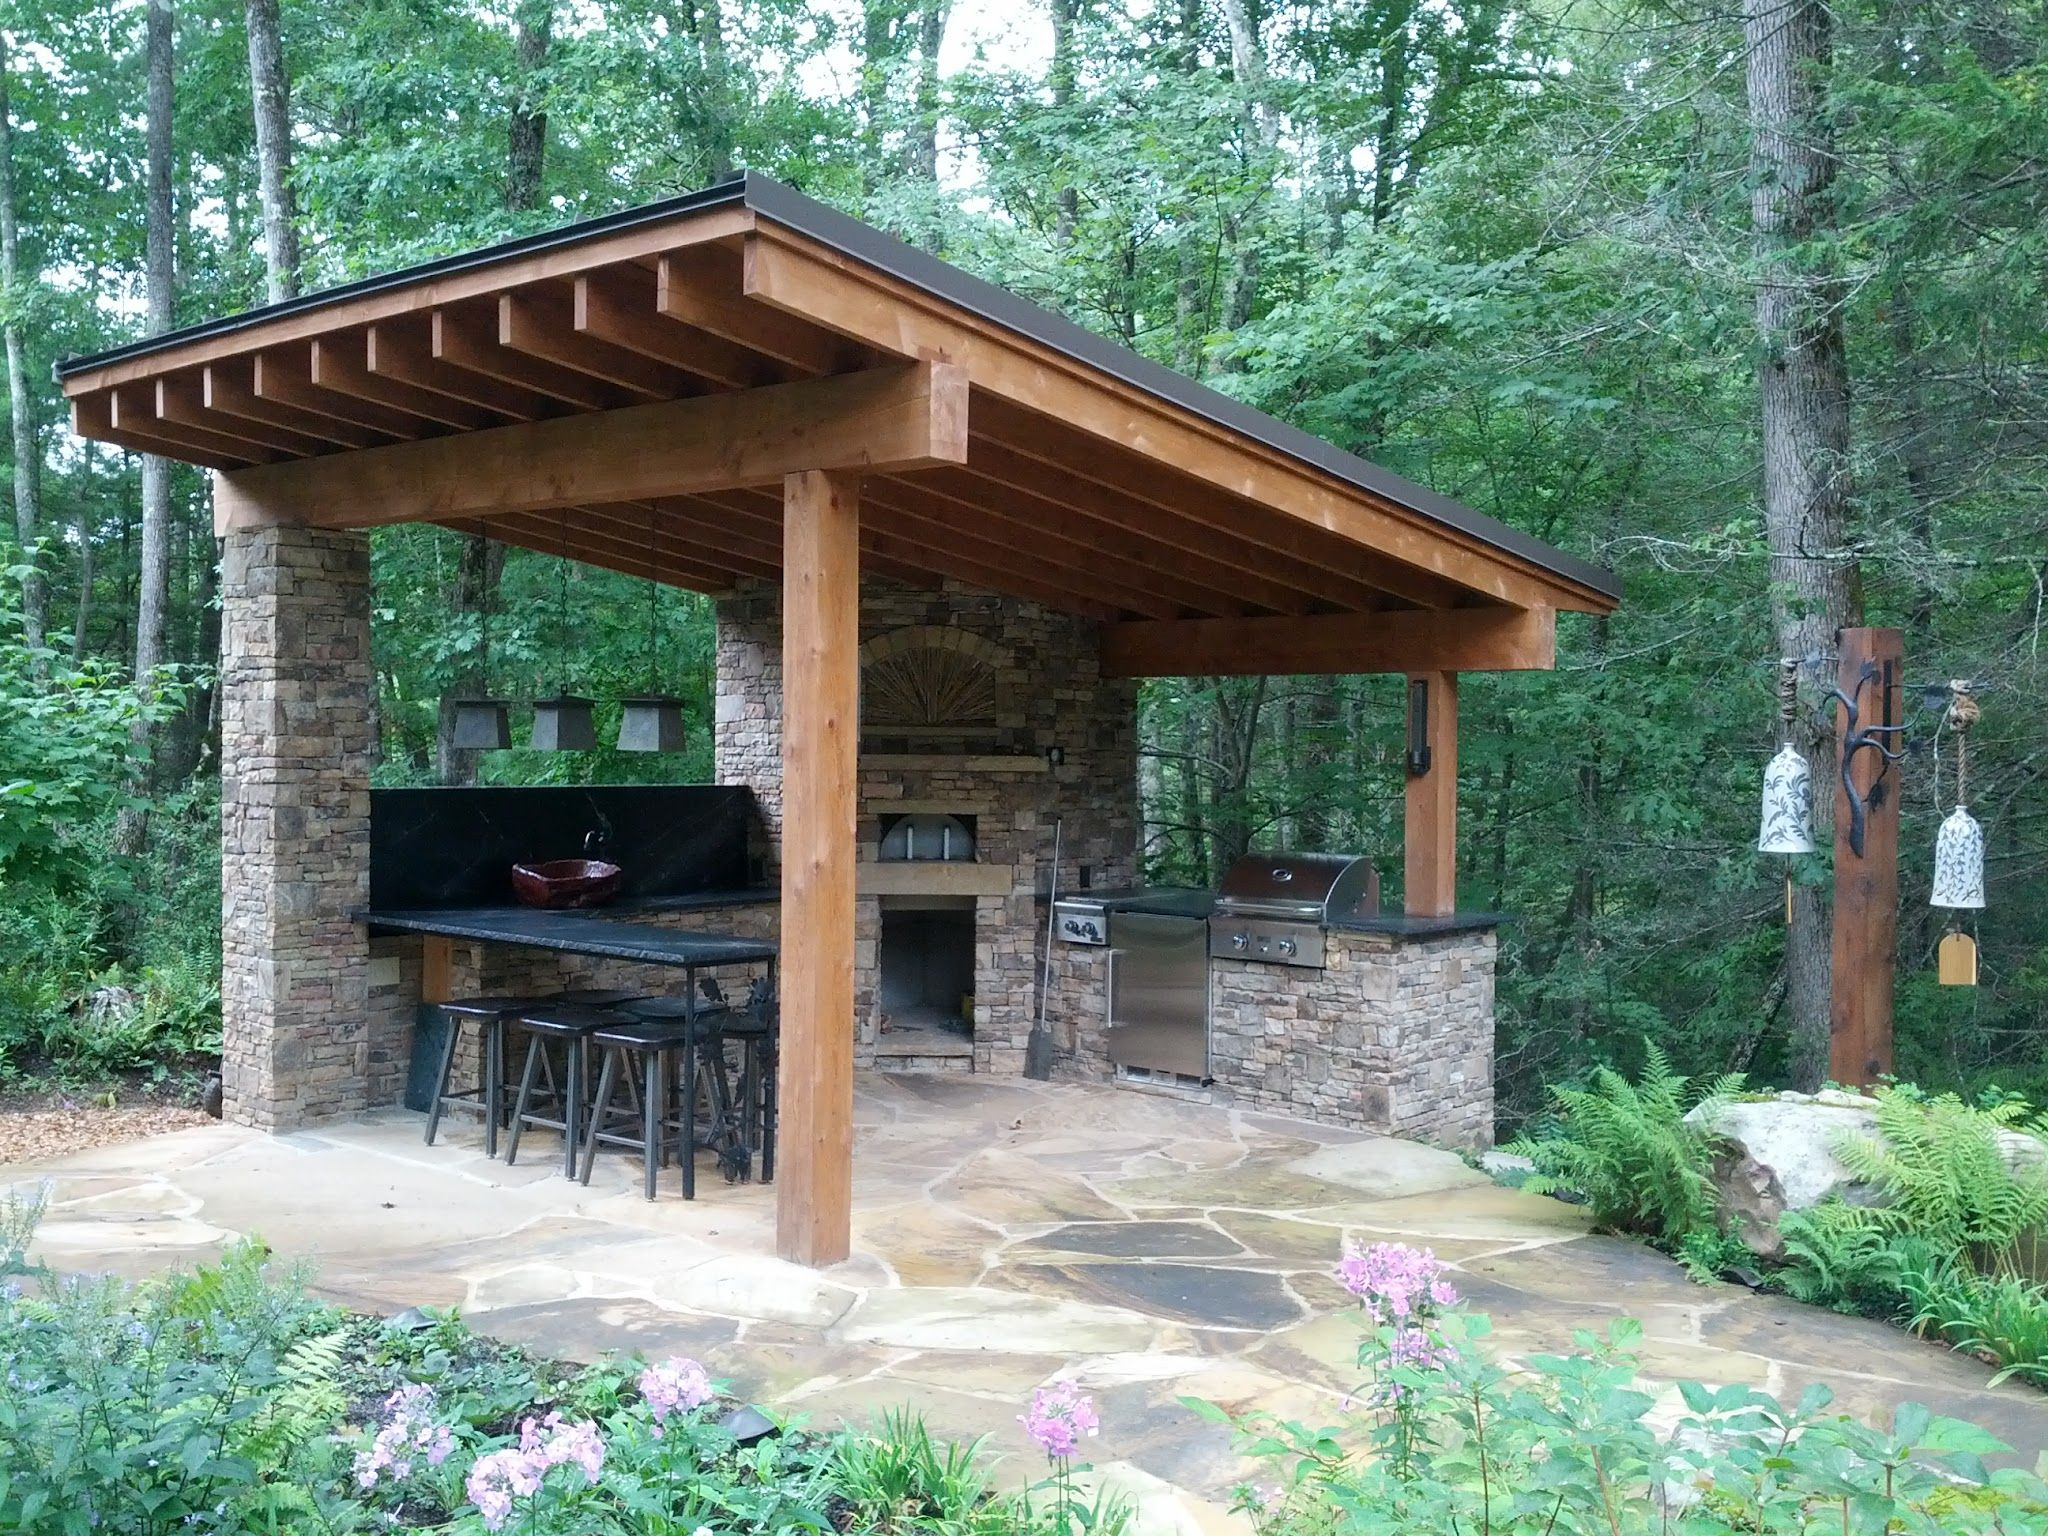 Outdoor Pizza Kitchen In The Mountains